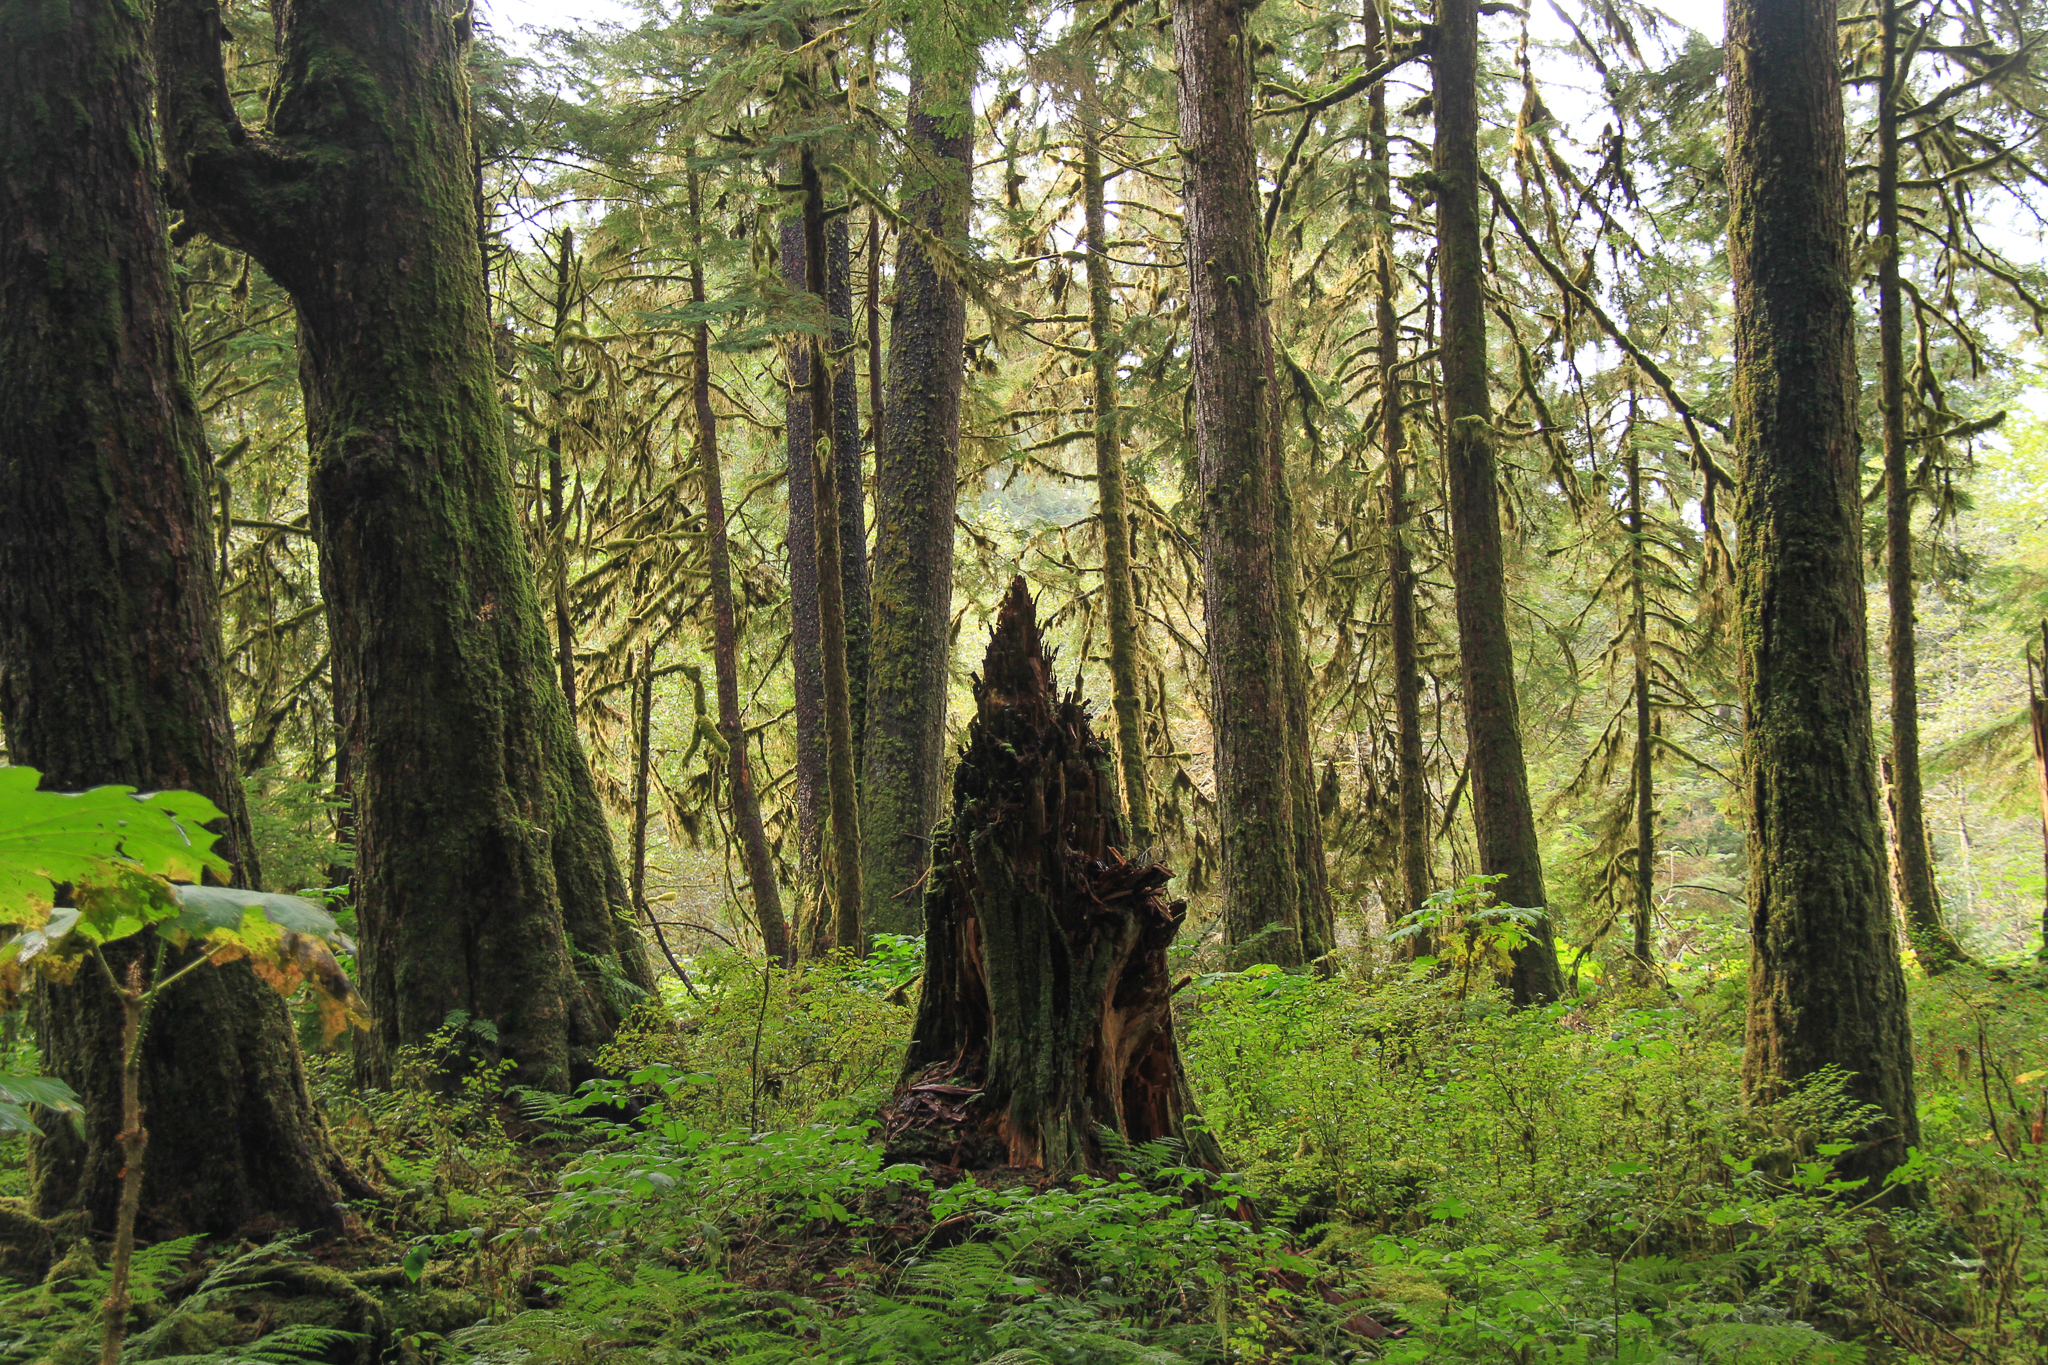 A decaying snag in old growth forest inside the protected Honker Divide on Prince of Wales Island, Southeast Alaska.